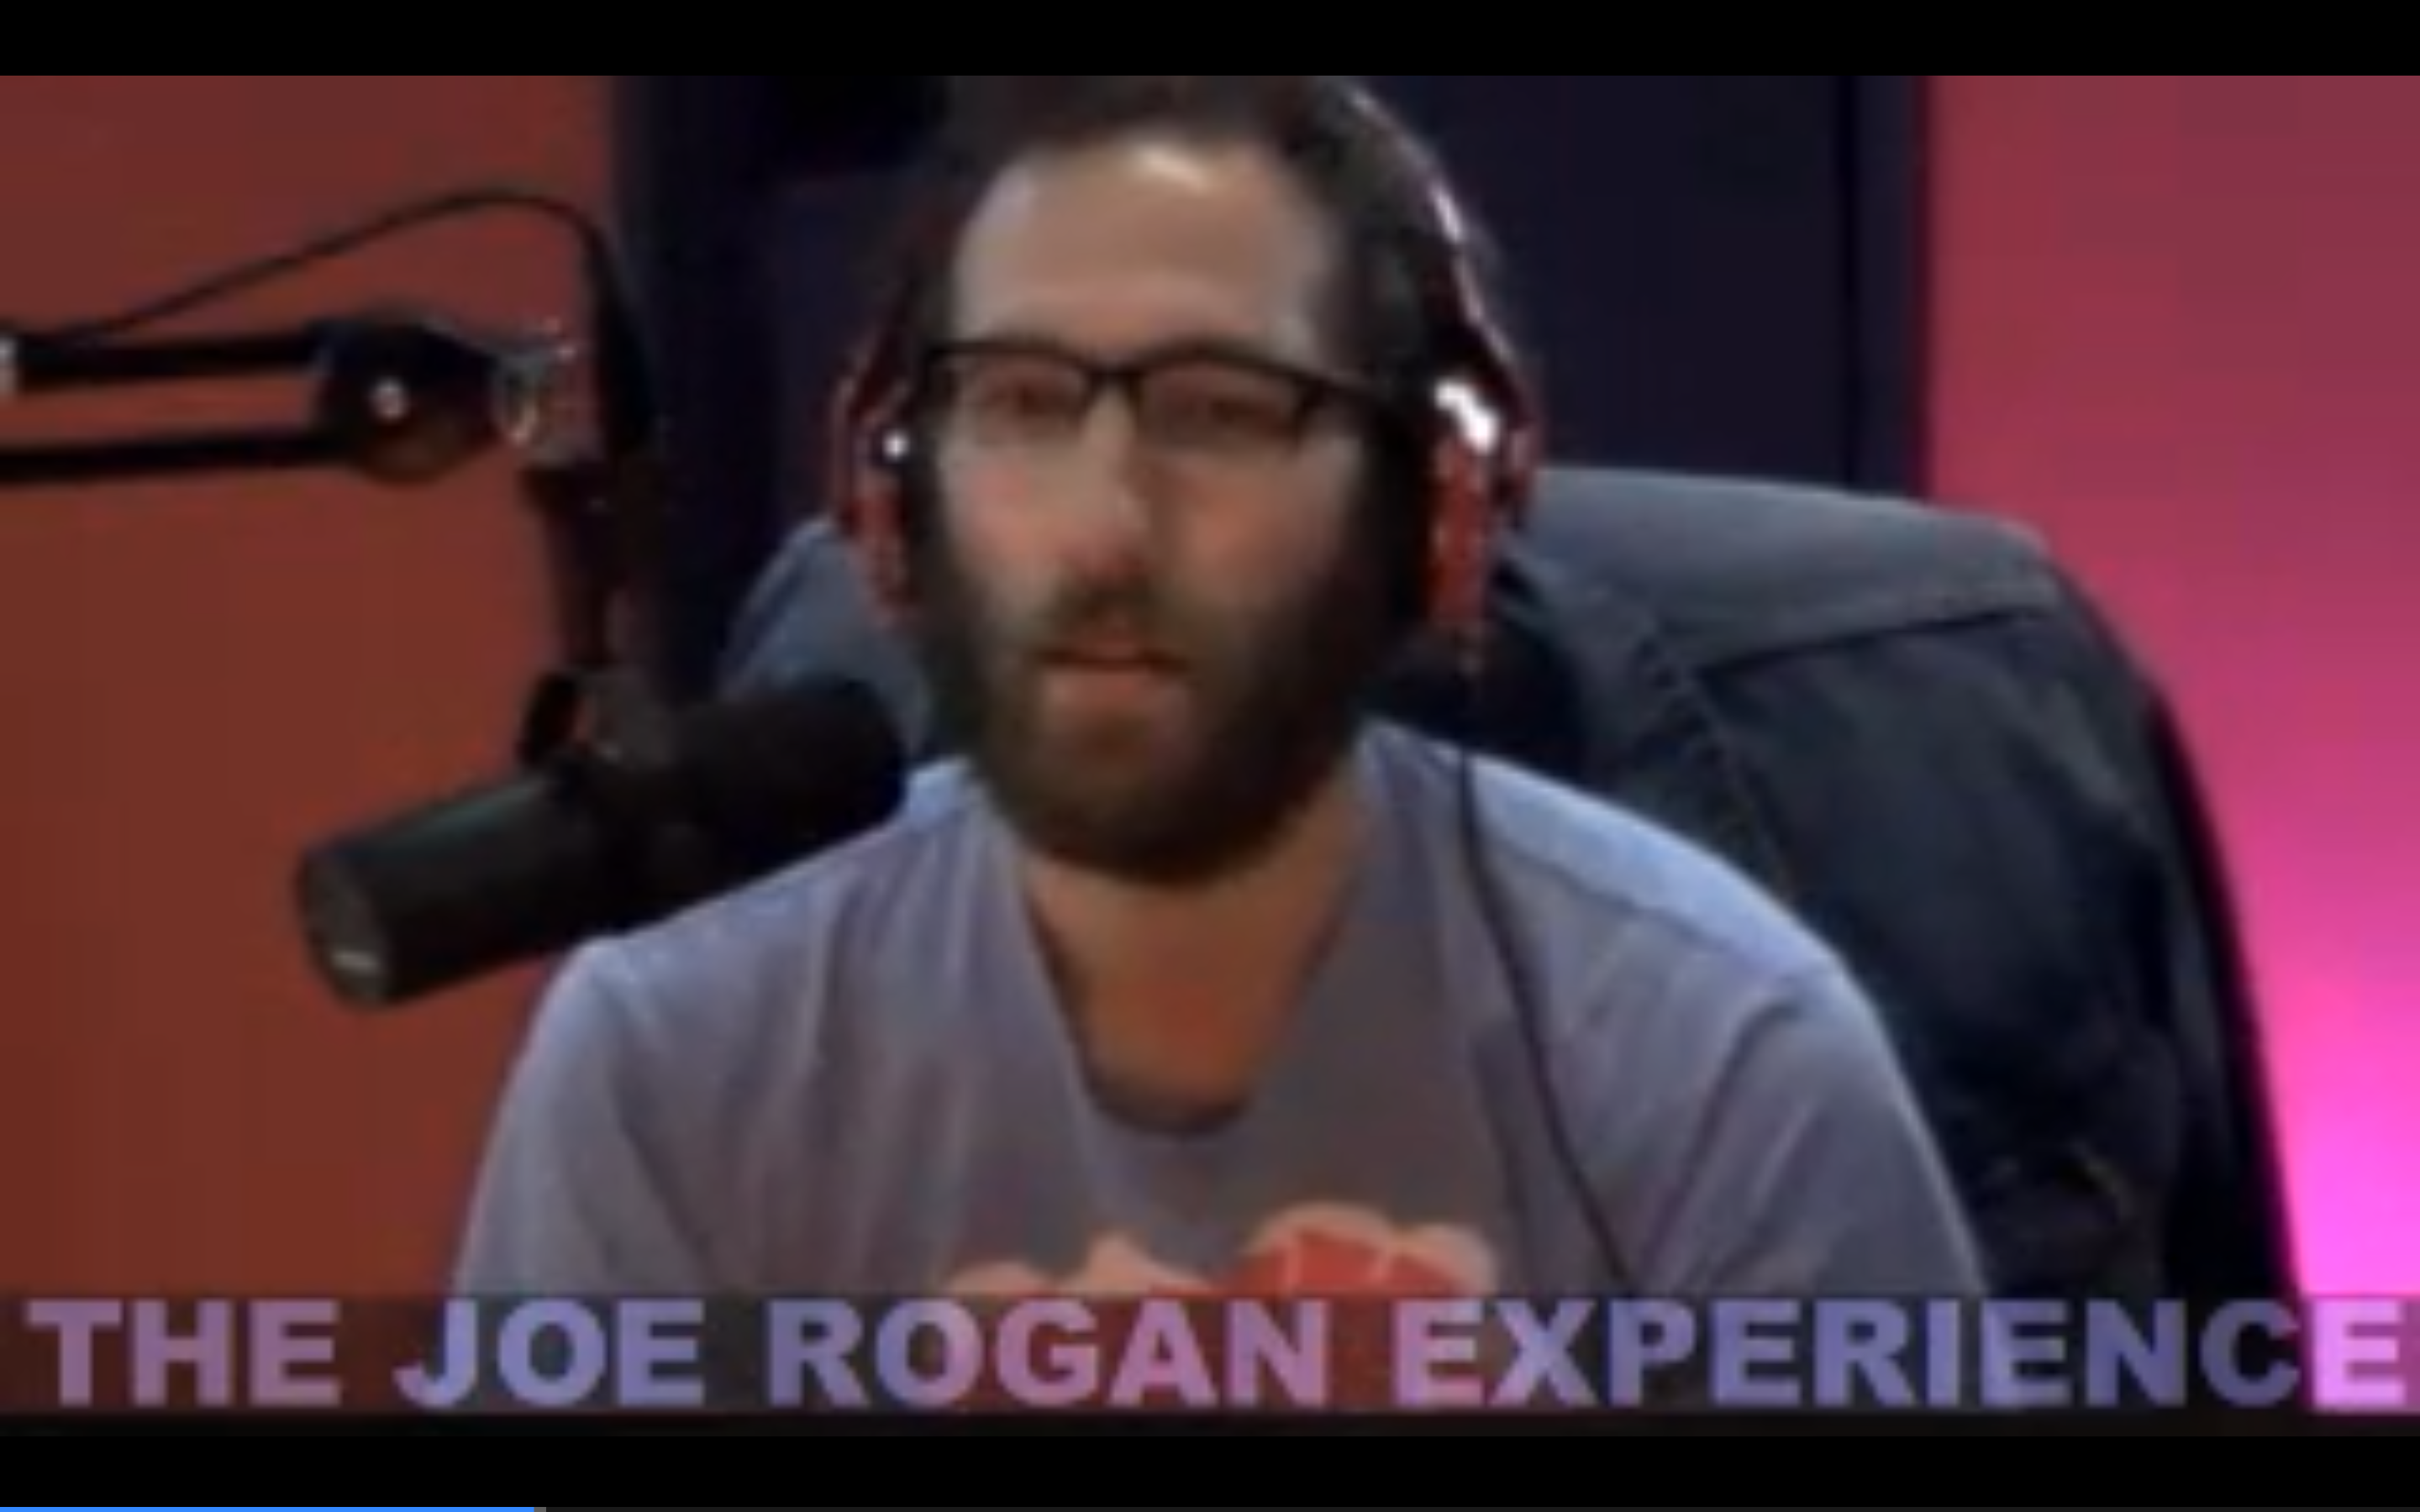 The Joe Rogan Experience #322 - Ari Shaffir